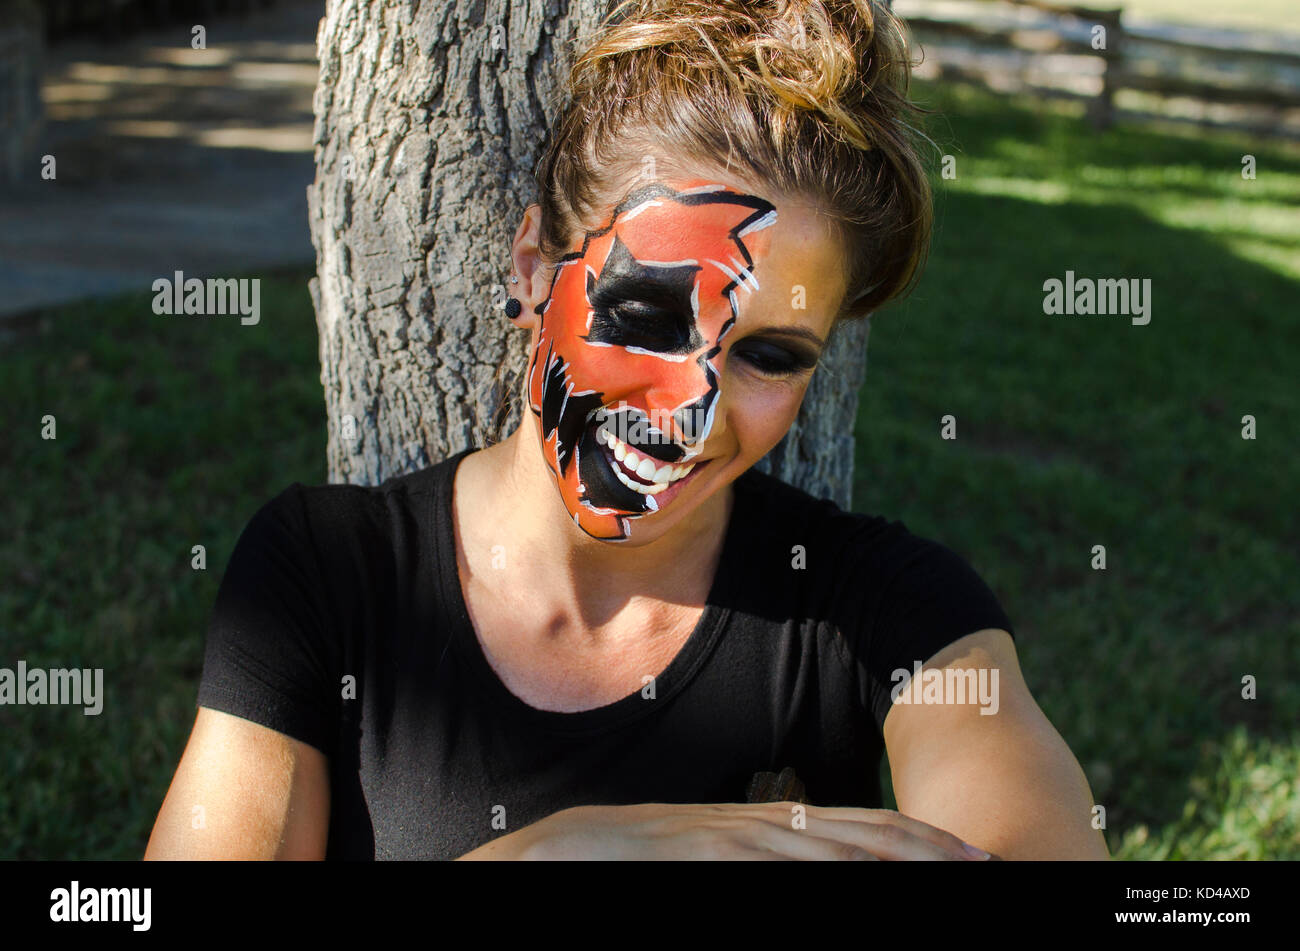 Woman in Jack-O-Lantern face paint looks happy and festive for the Halloween fall holiday. - Stock Image